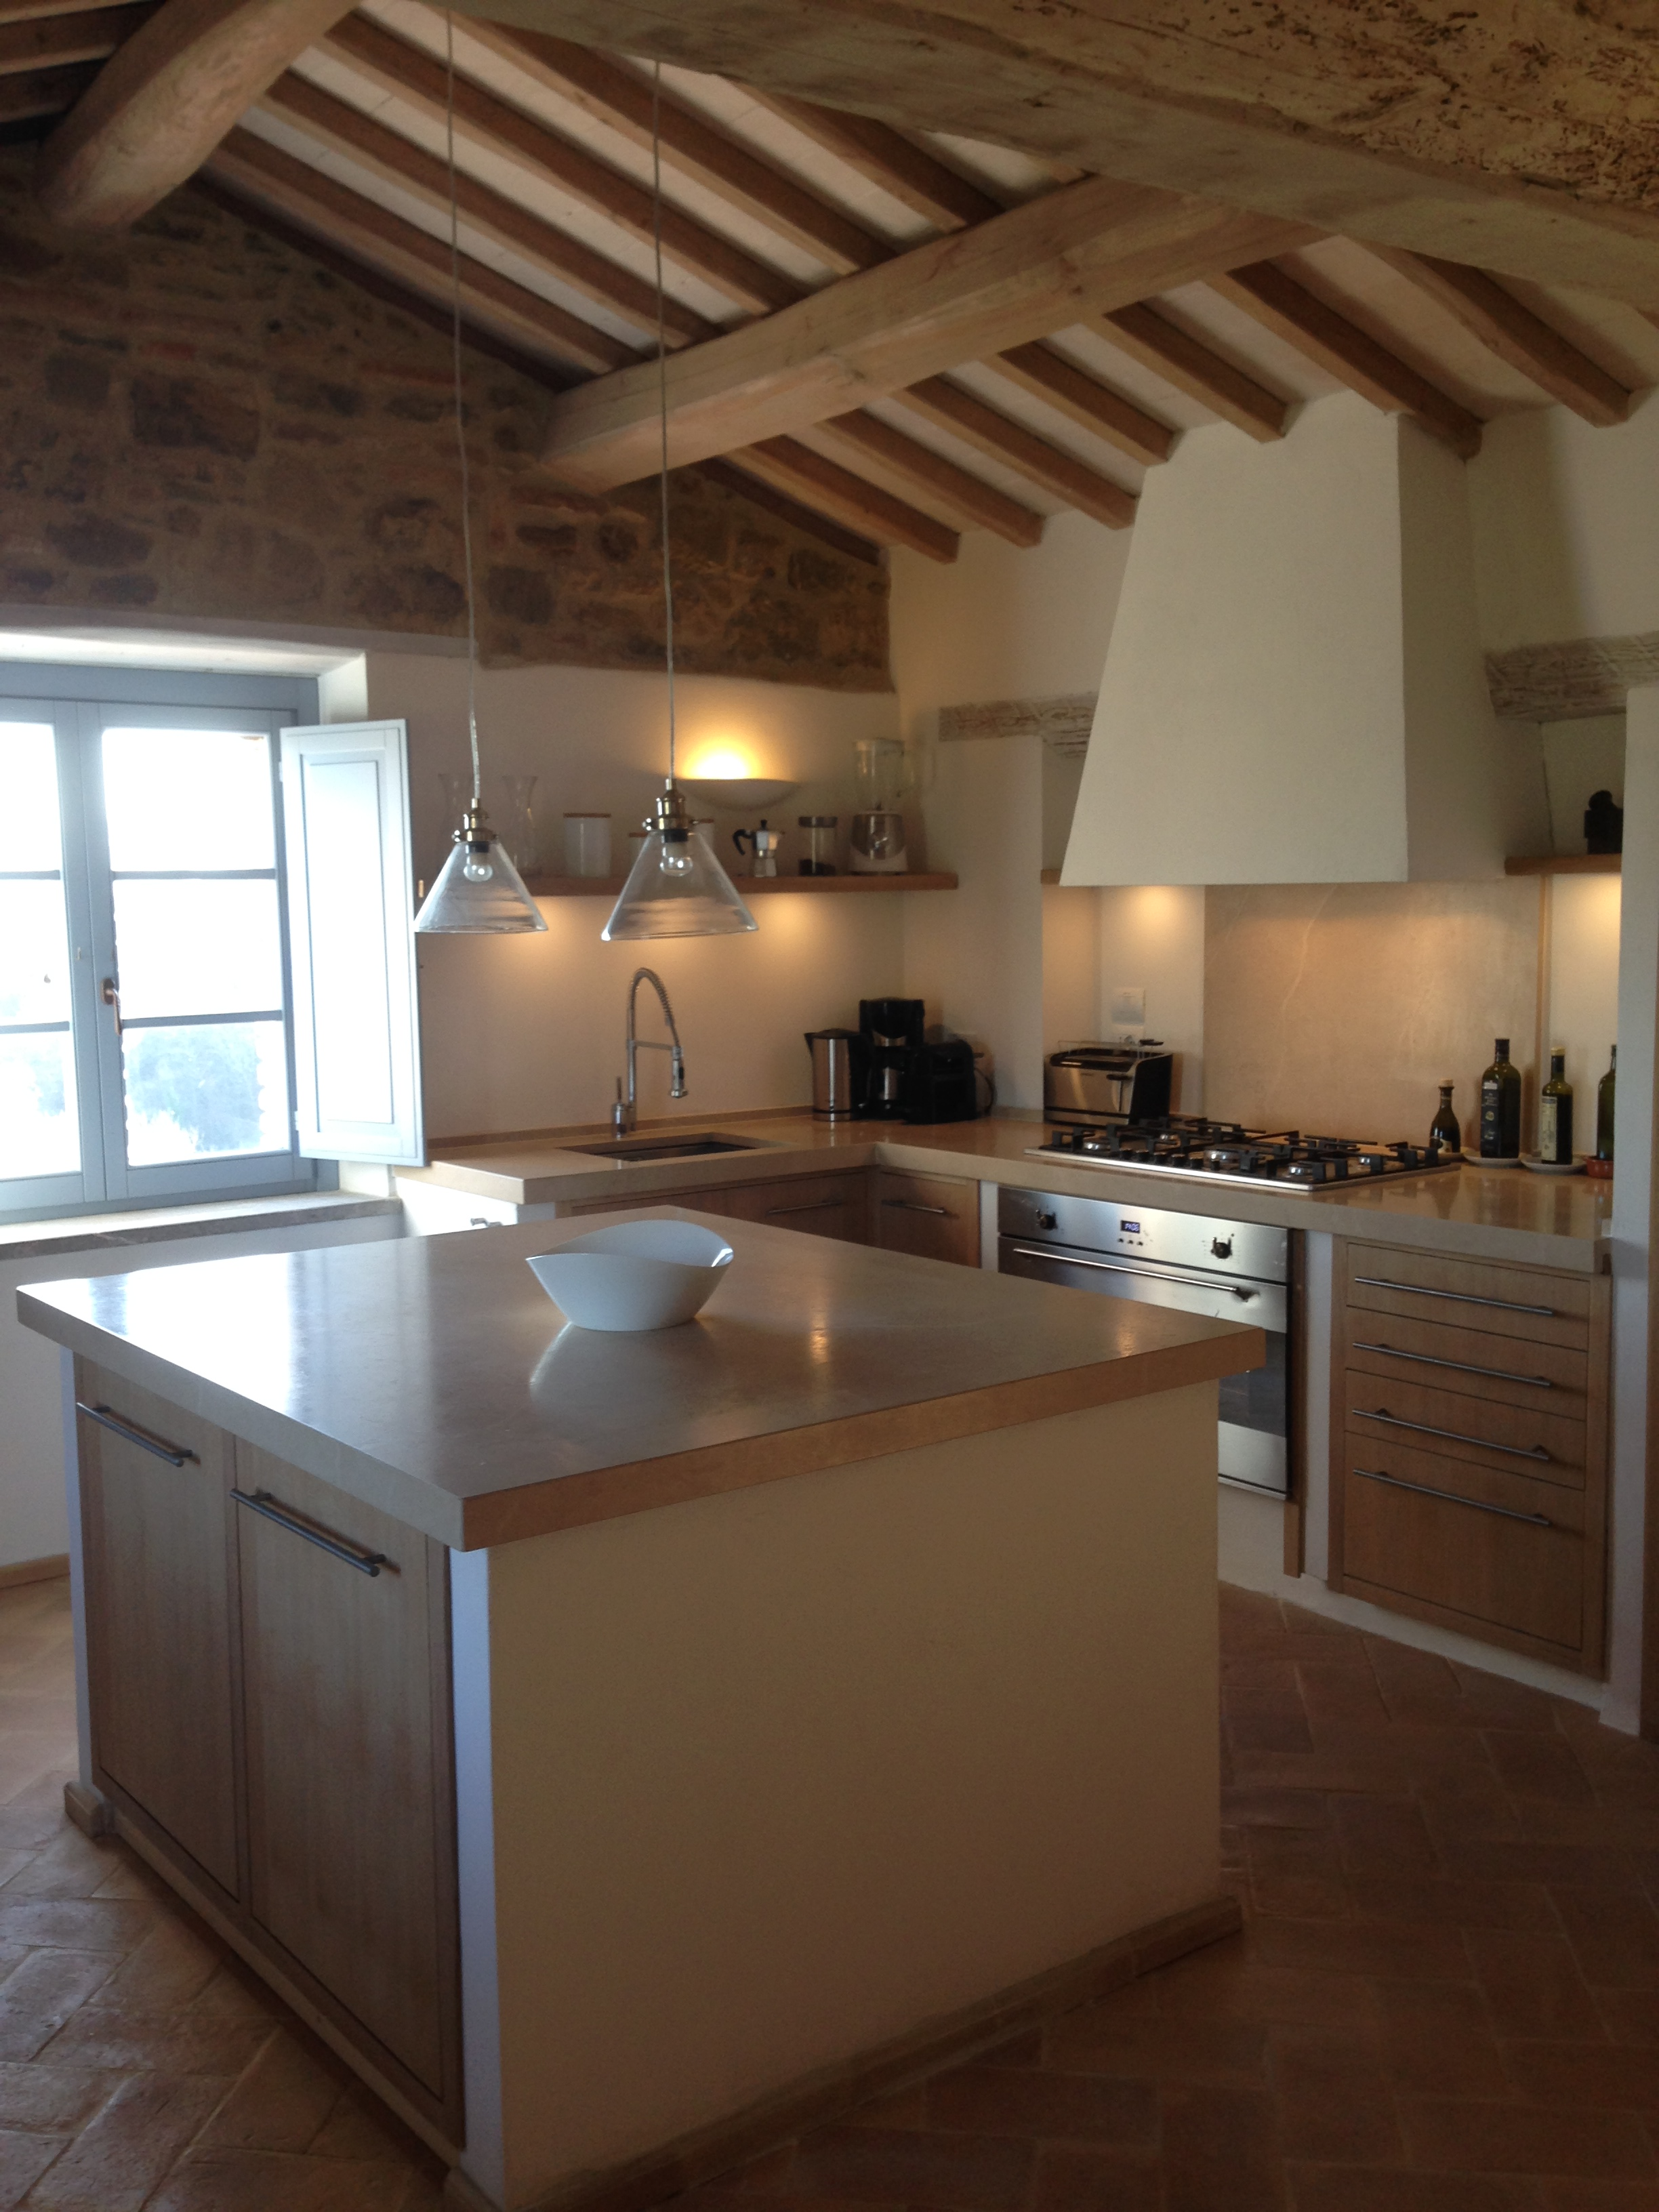 Use this fully equipped kitchen